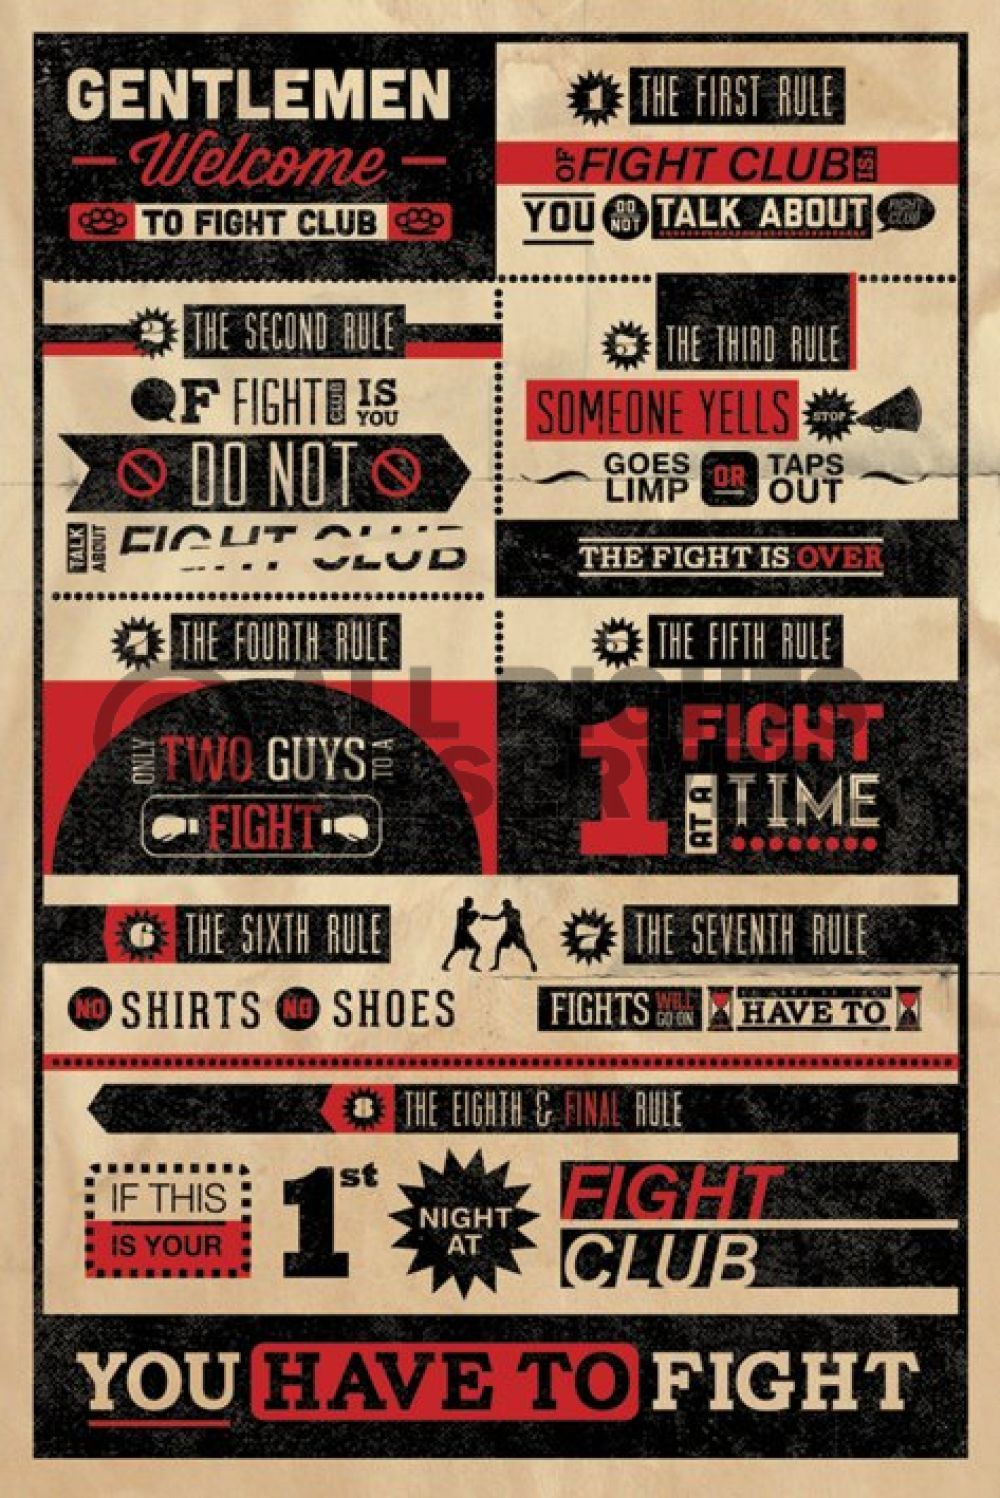 Poster design rules - Fight Club Movie Poster Gentlemen Welcome To 24x36 Brad Pitt 8 Rules